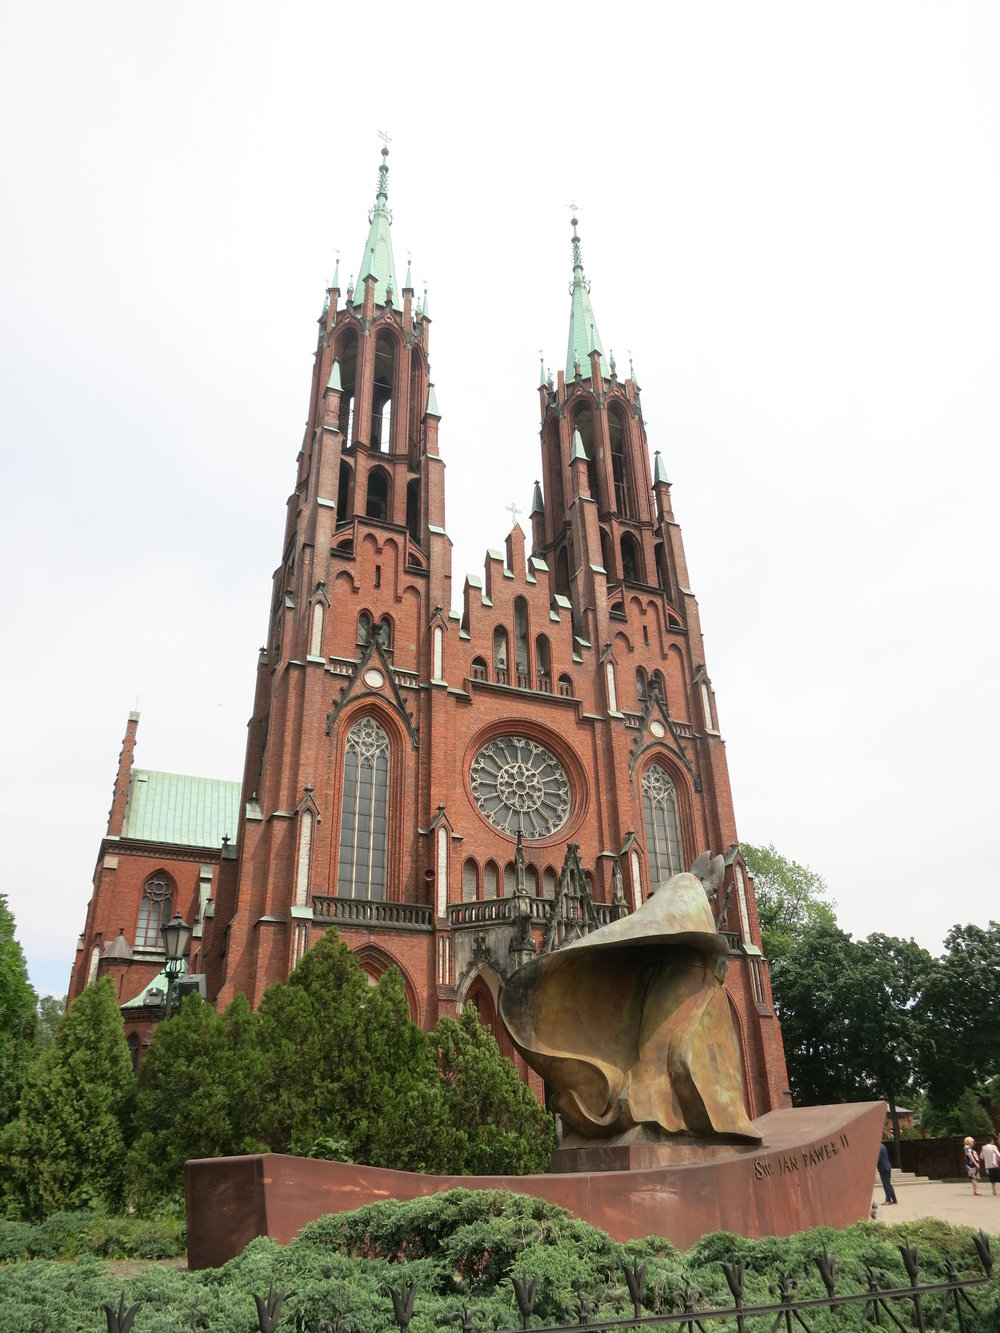 The cathedral was modeled after the one in Cologne, Germany.